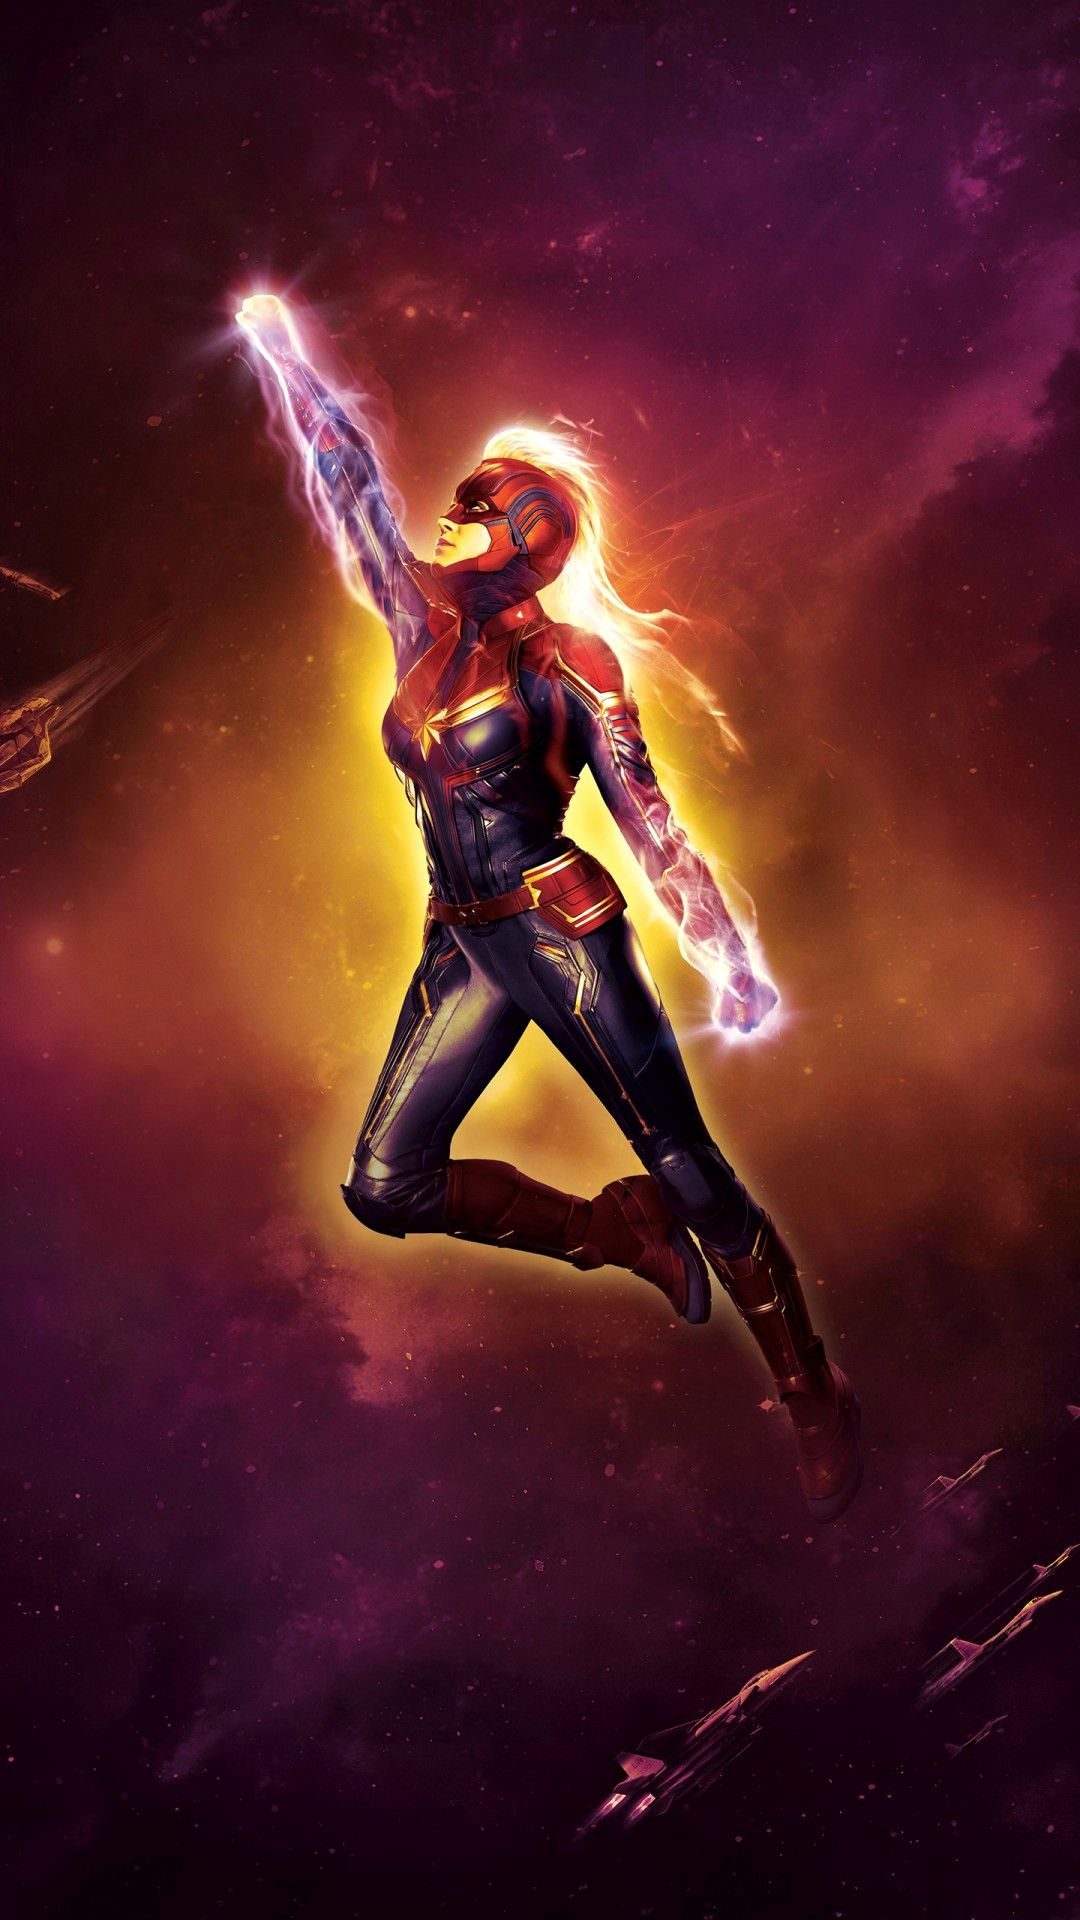 Captain Marvel Wallpaper Awesome Marvel Wallpaper For Android In 2020 Marvel Movie Posters Marvel Wallpaper Marvel Posters